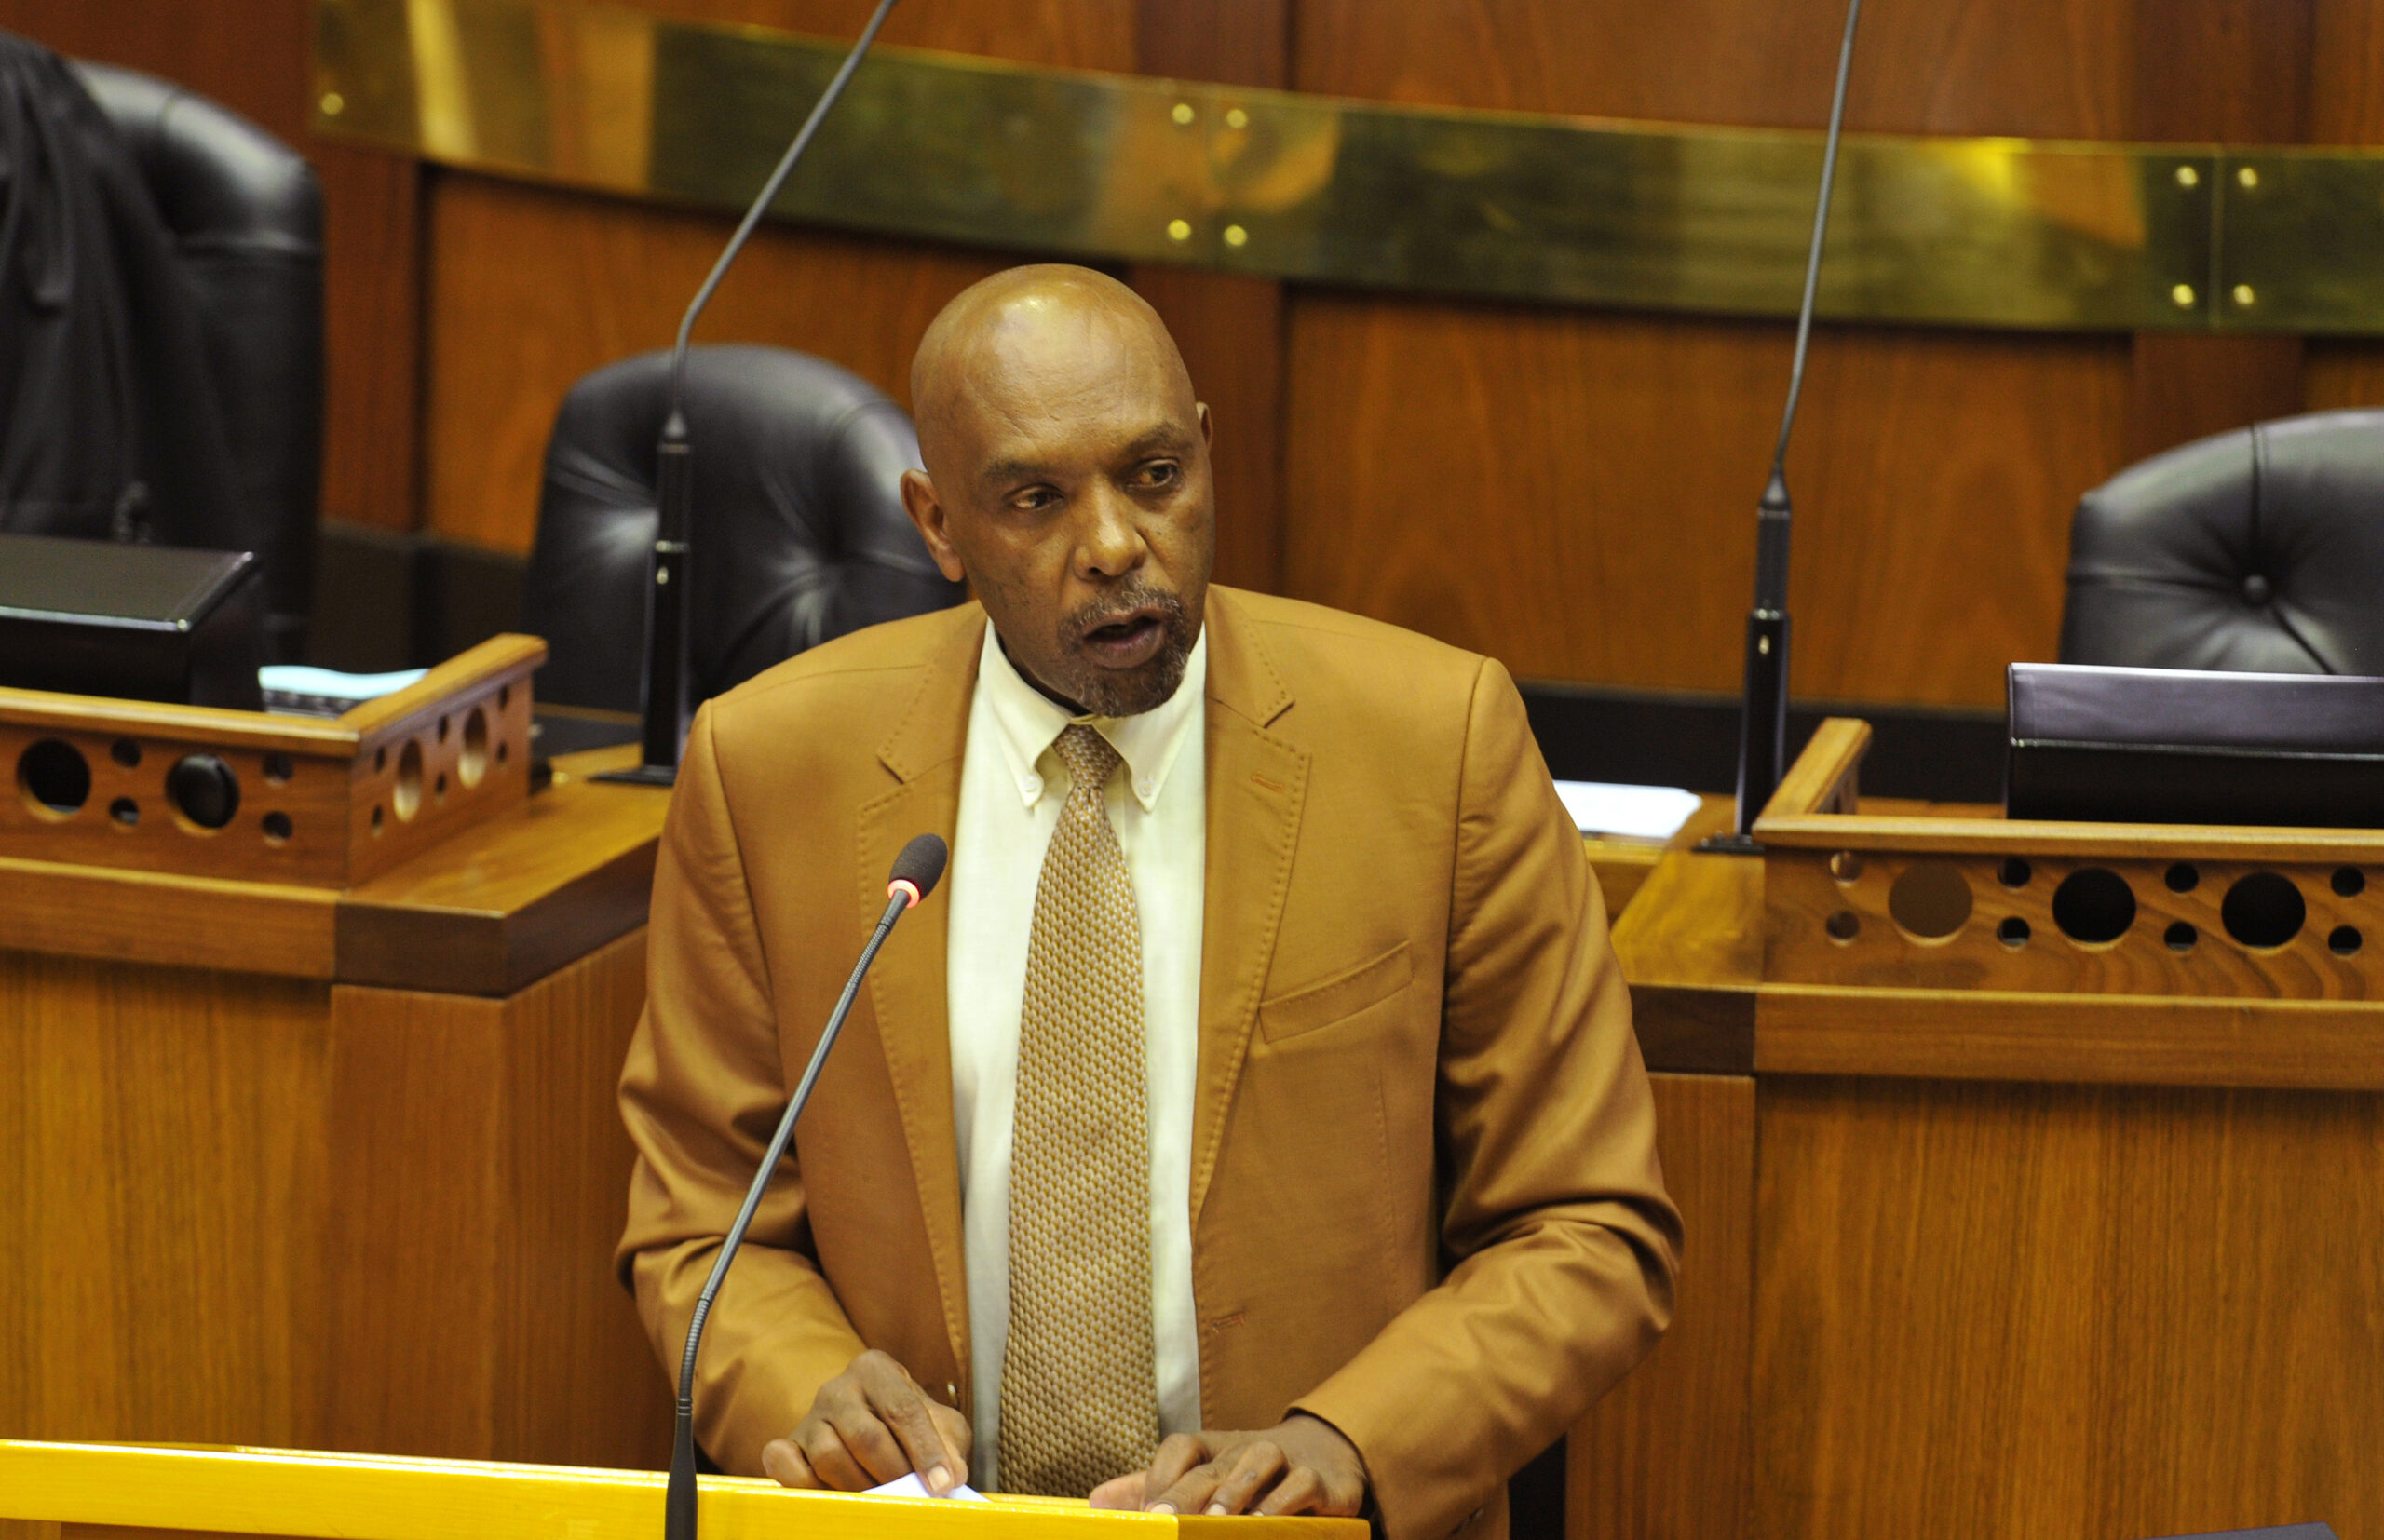 The ANC has welcomed Smith's decision to subject himself to an investigation by Parliament's ethics committee. Lulama Zenzile/Beeld/Gallo